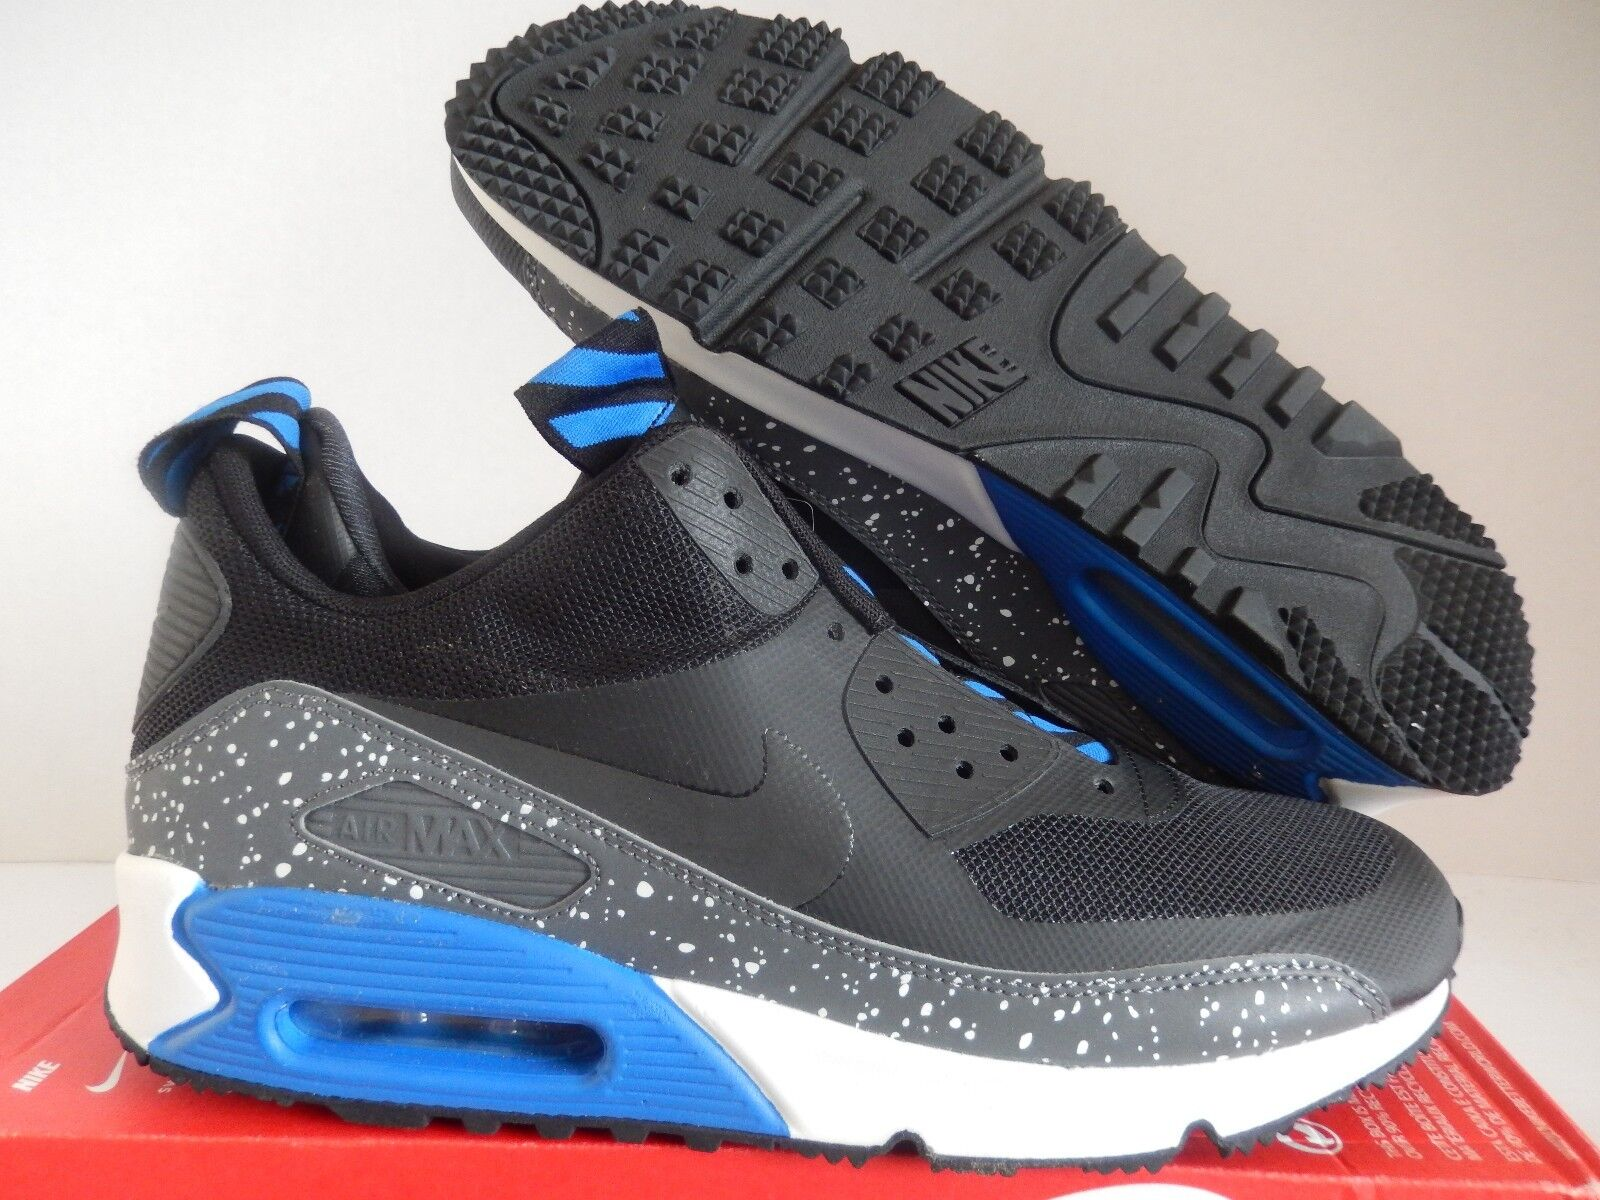 0996e6efa34e Nike Air Max 90 Sneakerboot NS Mens 616314-003 Black Blue BOOTS ...